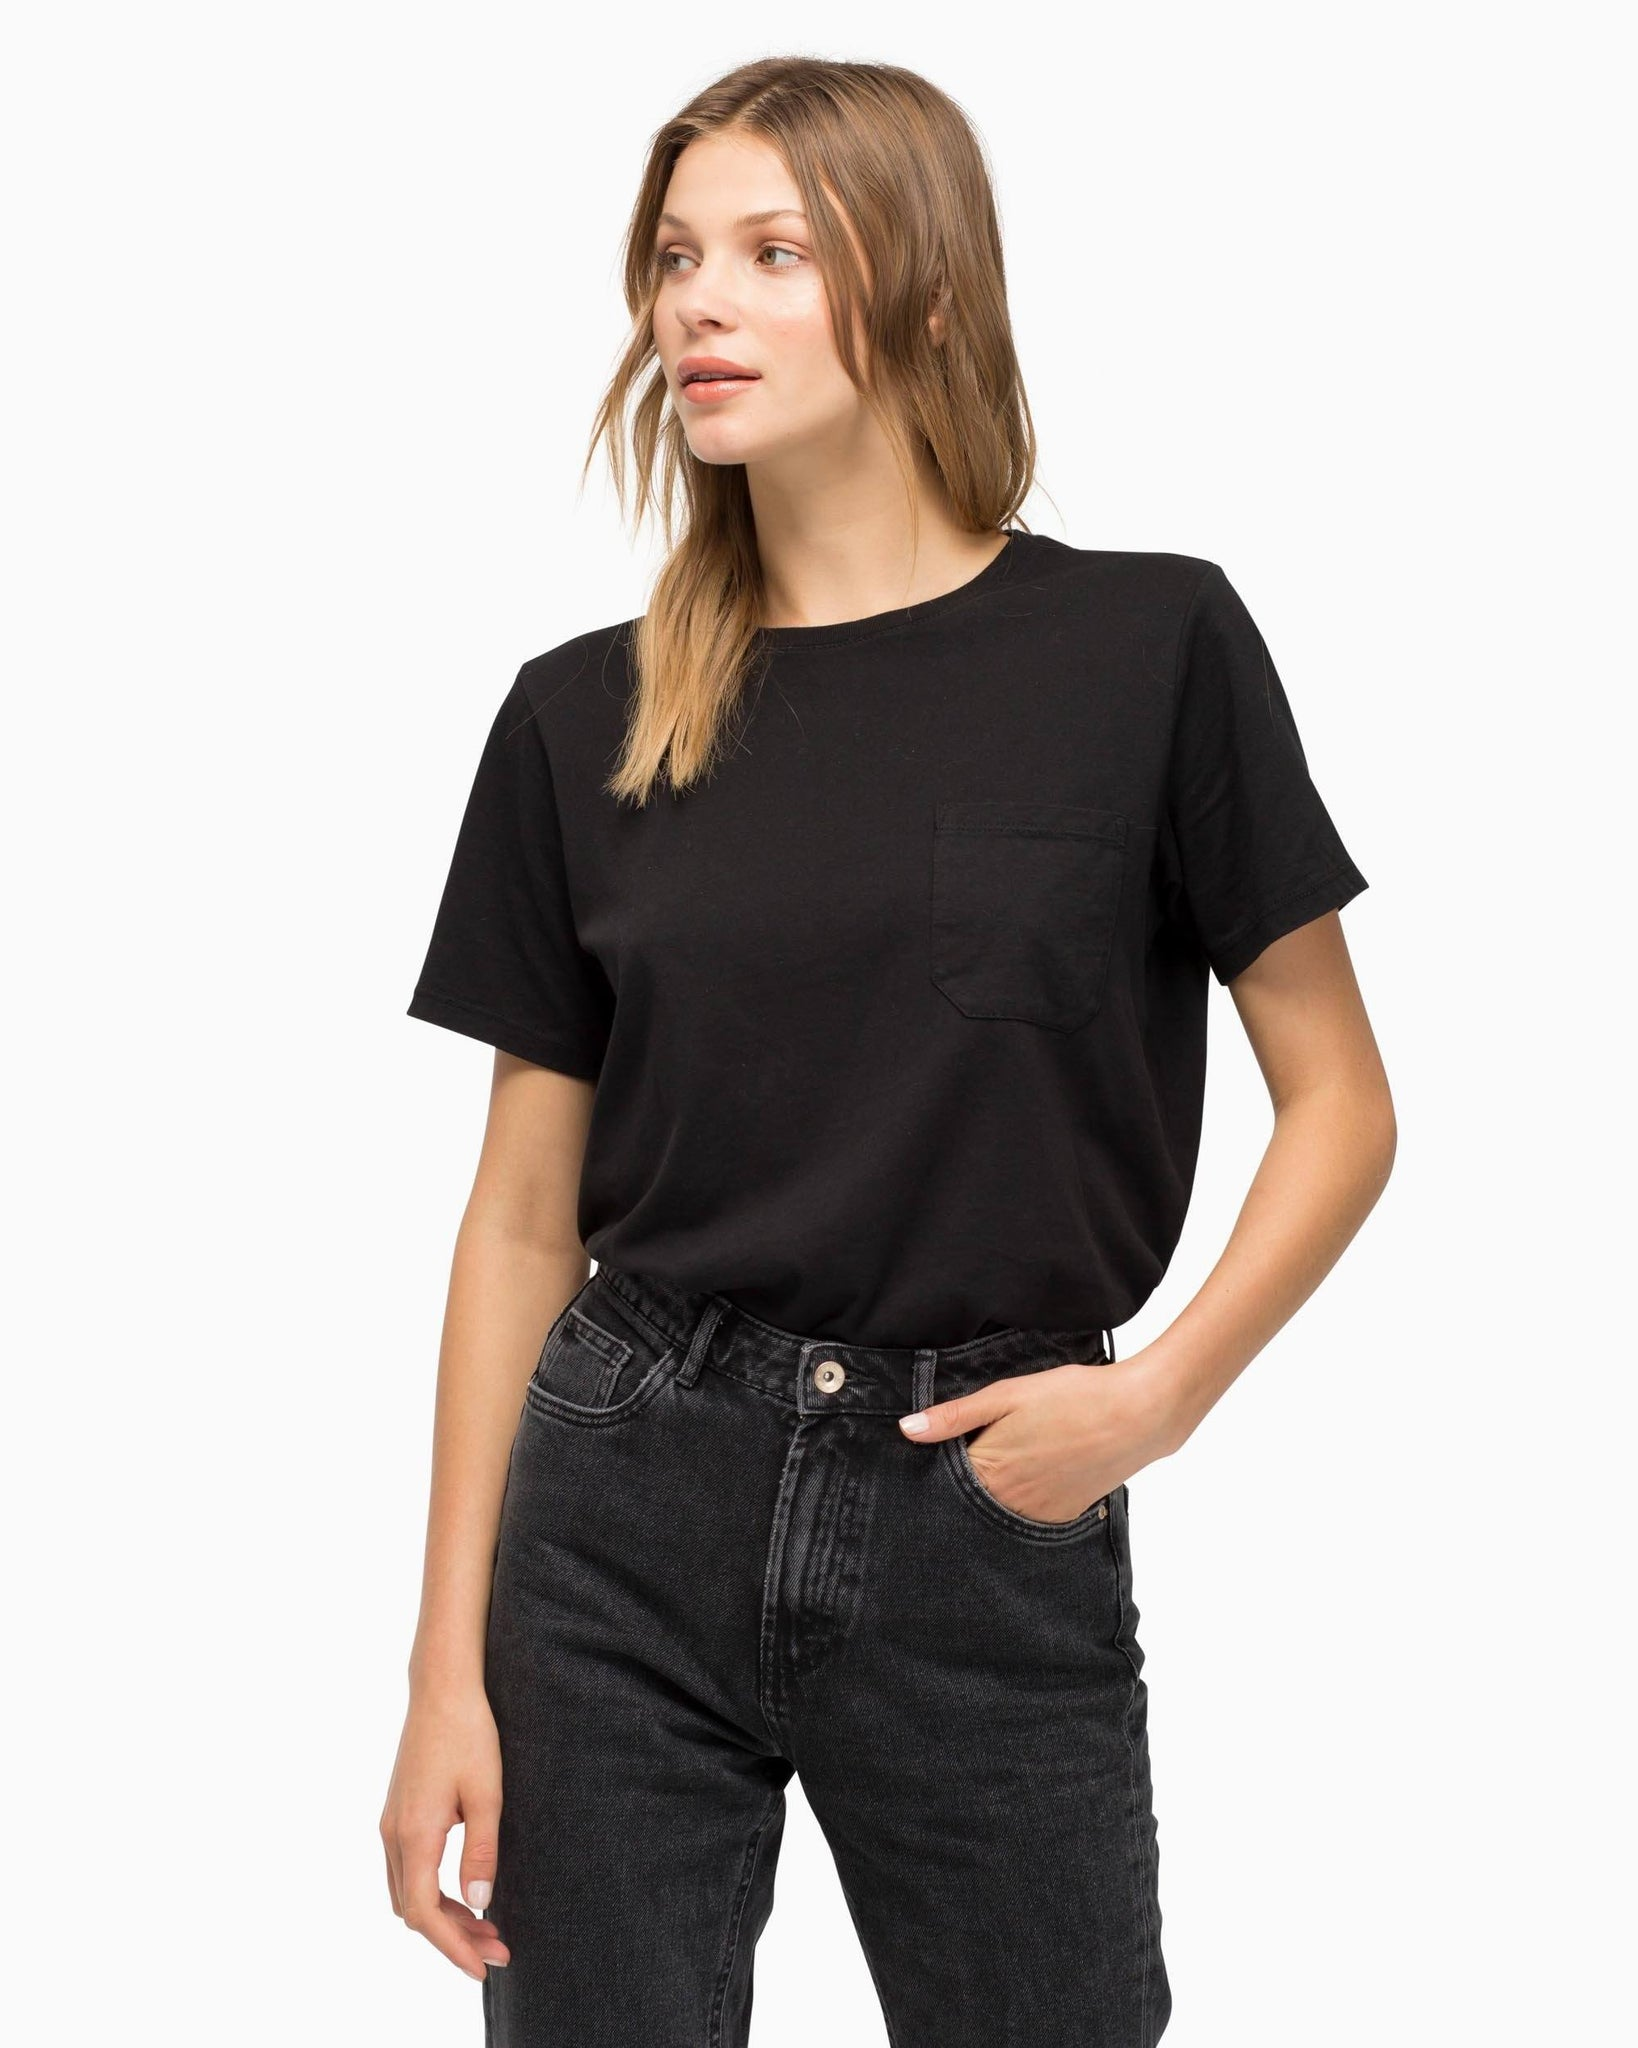 Women's Crew Pocket Tee - Black